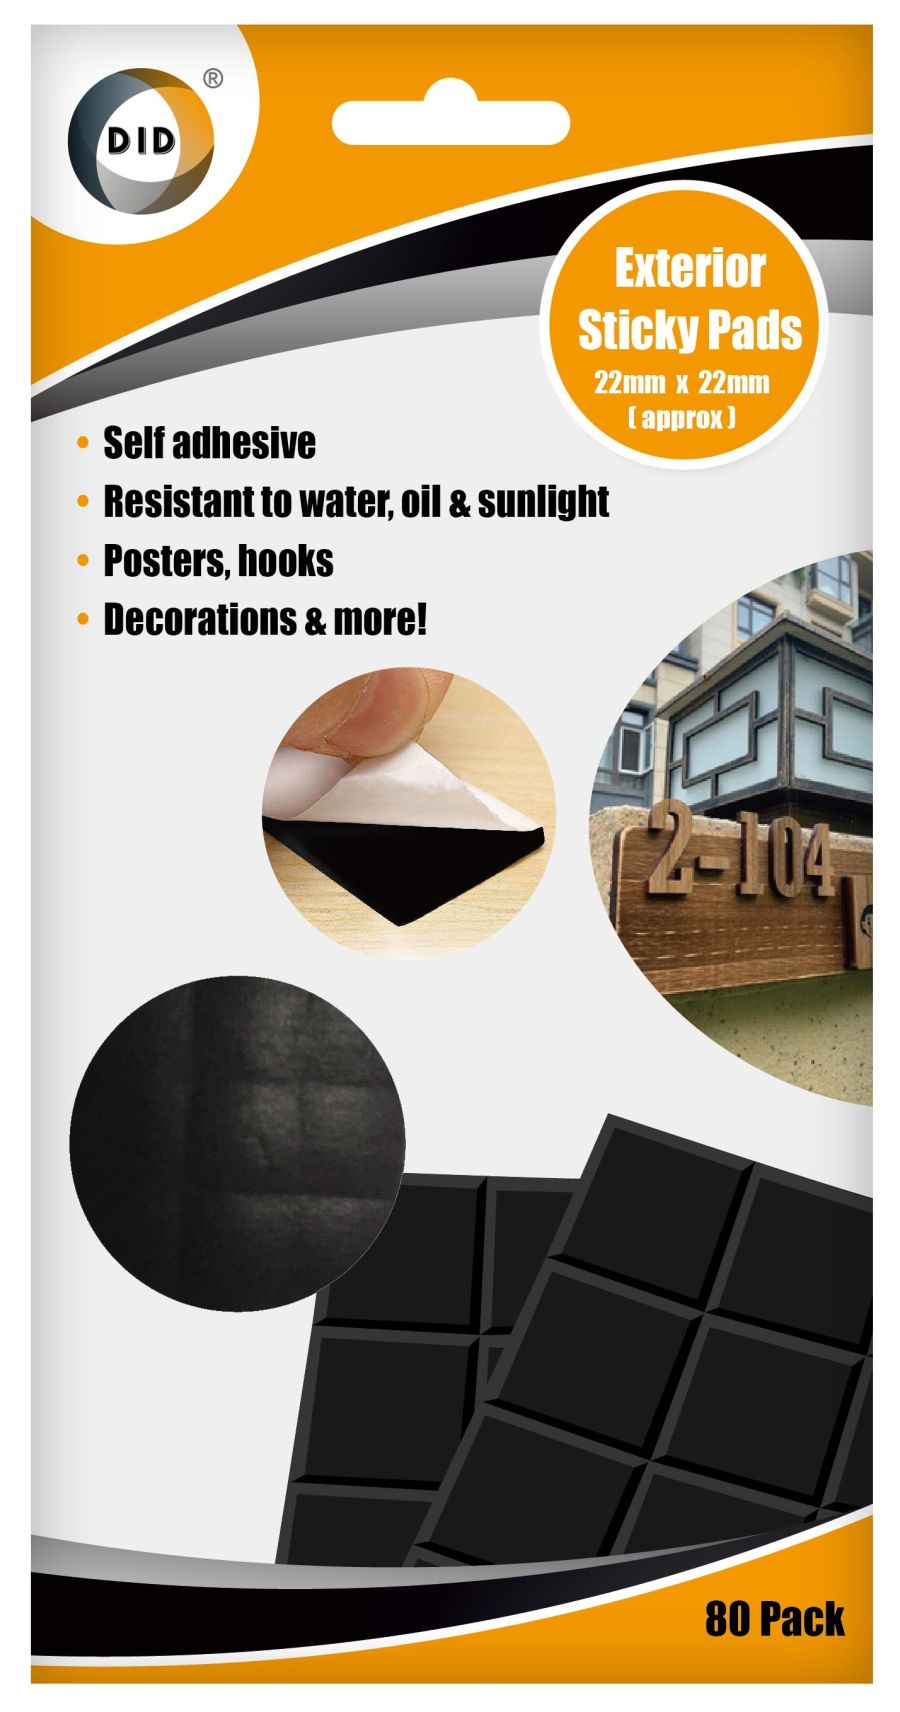 80pc Exterior Sticky Pads